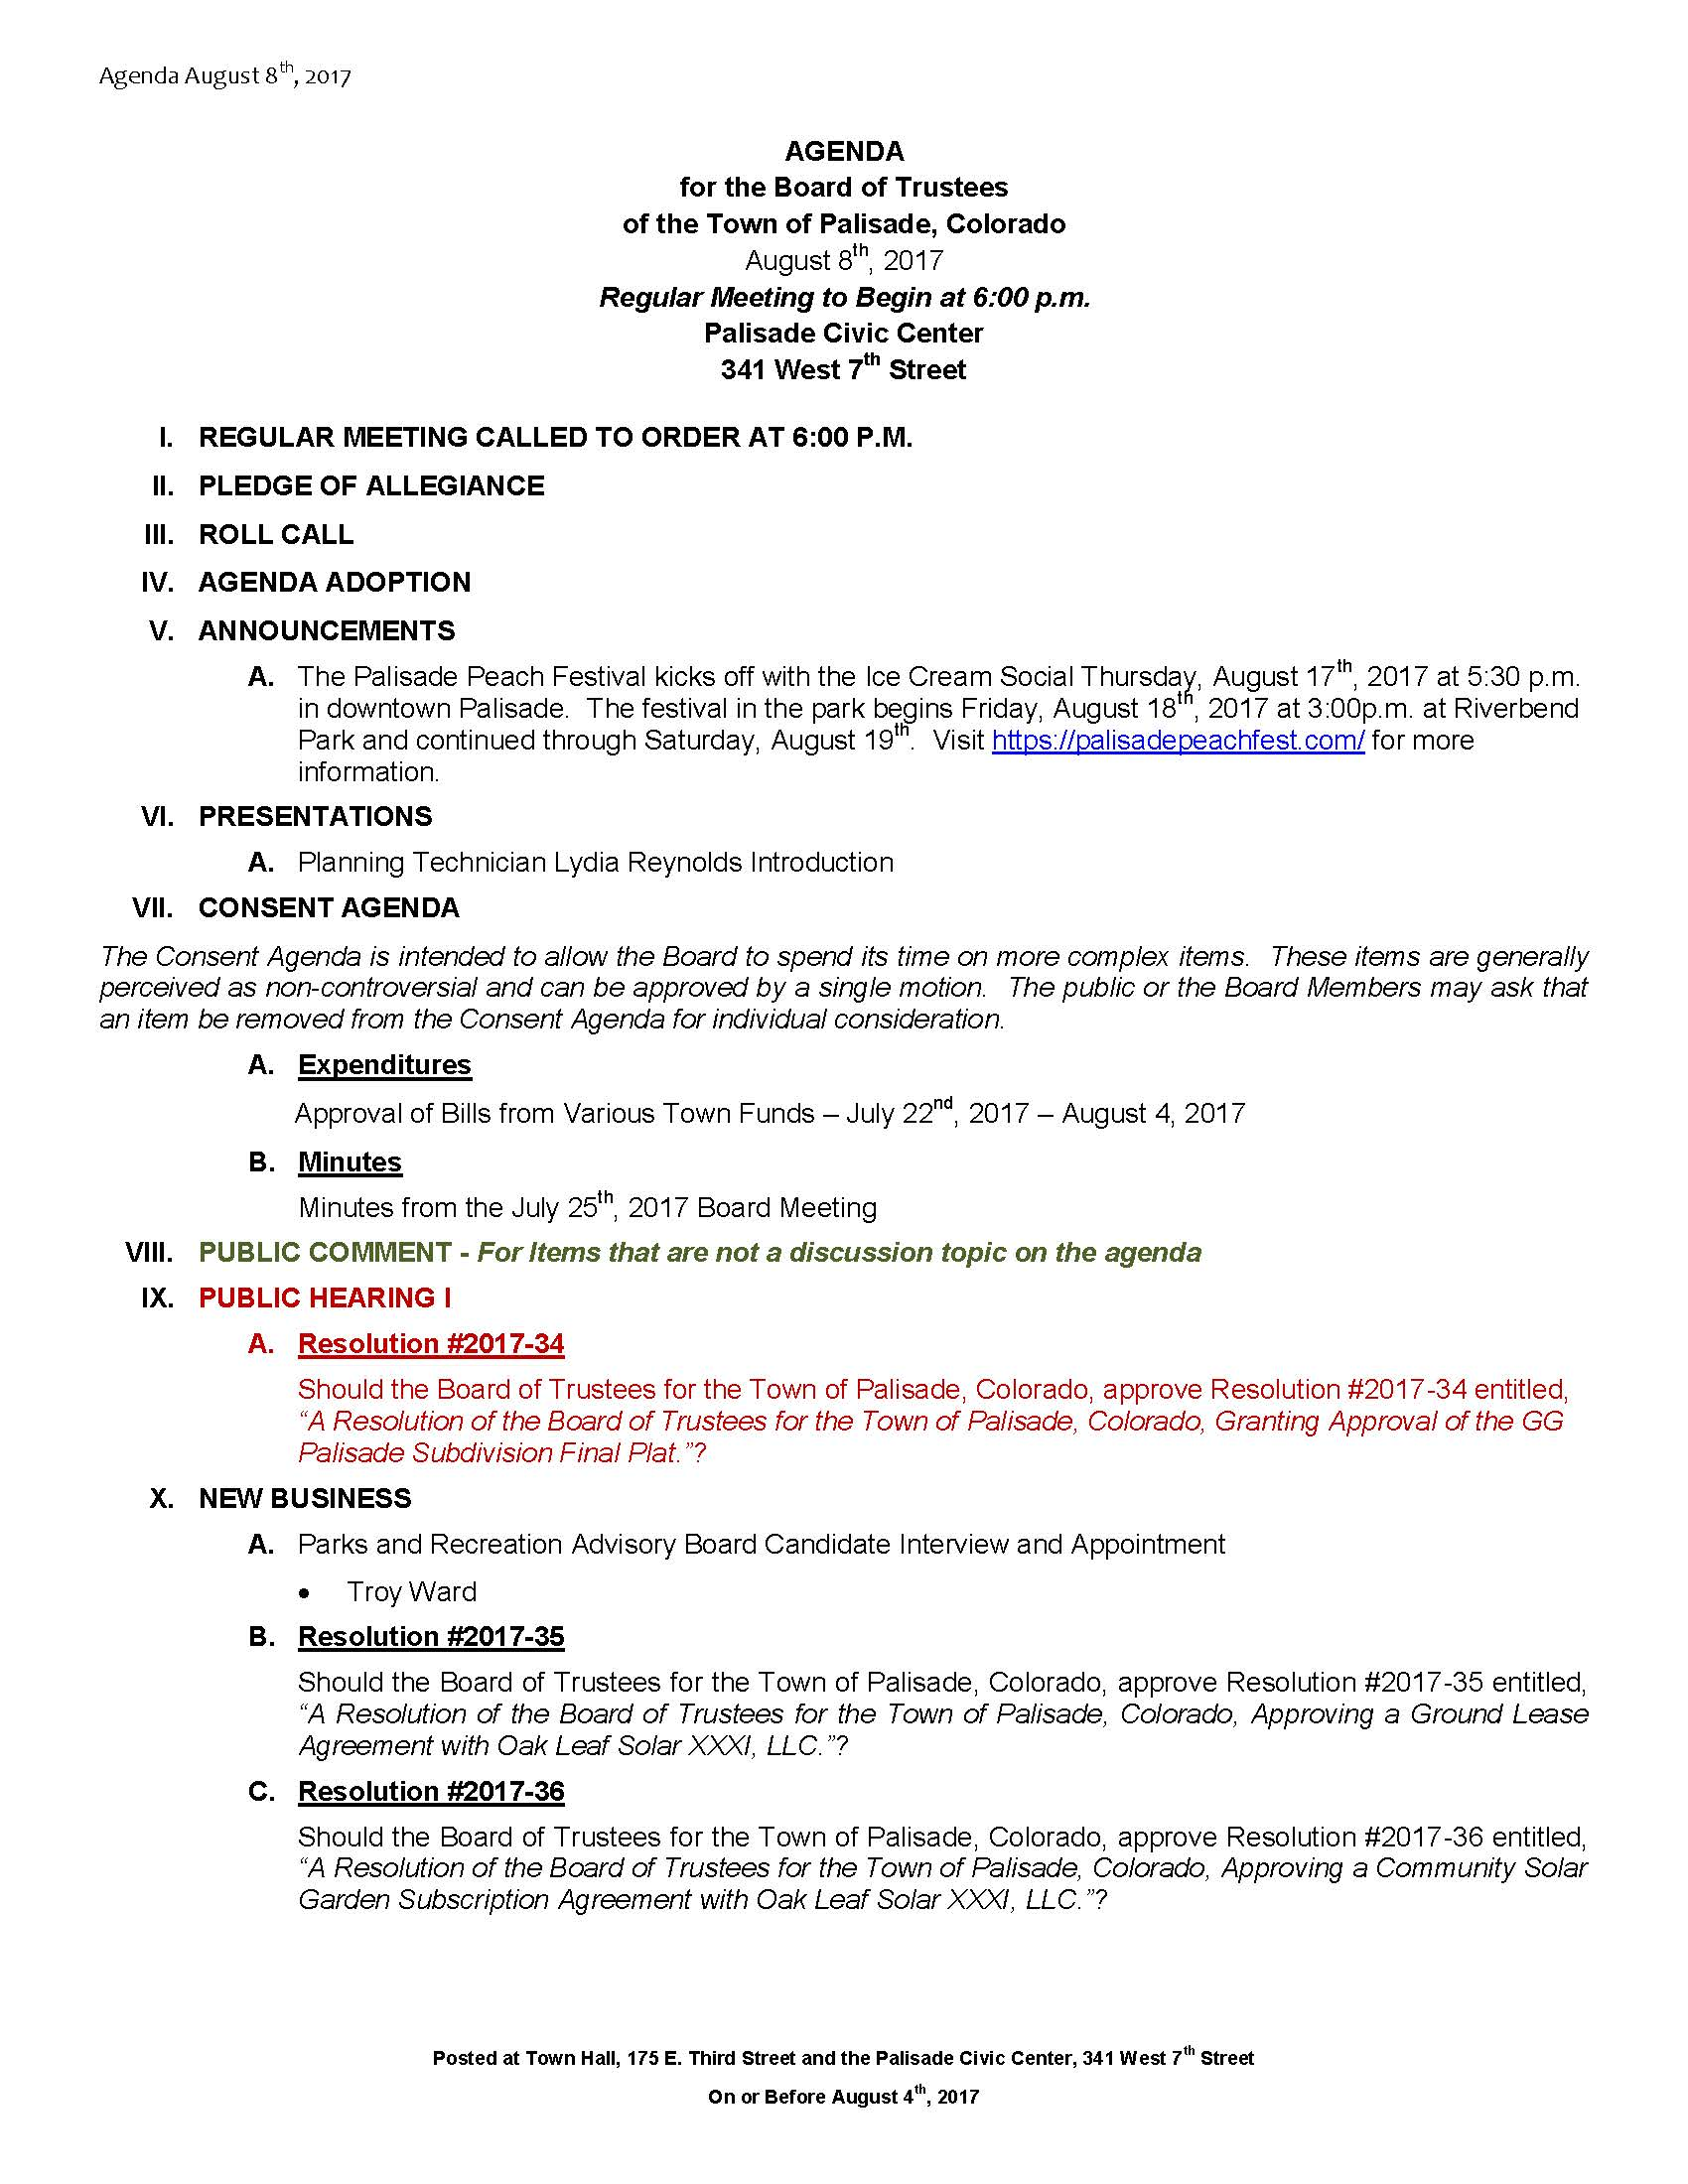 August 8th 2017 Board Meeting Agenda Page 1